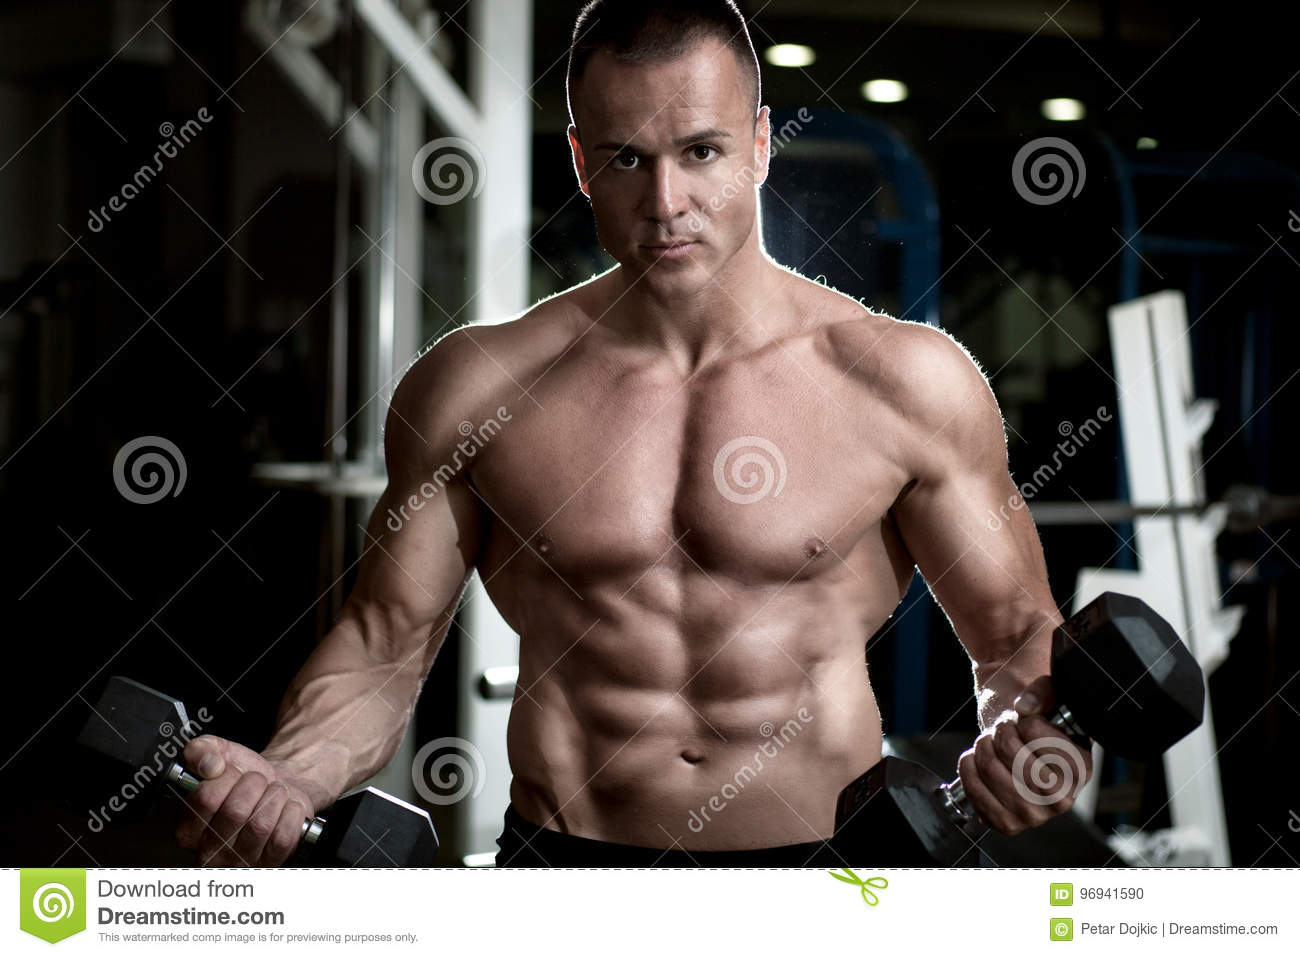 Bodybuilder Lifting Weights Stock Image - Image of